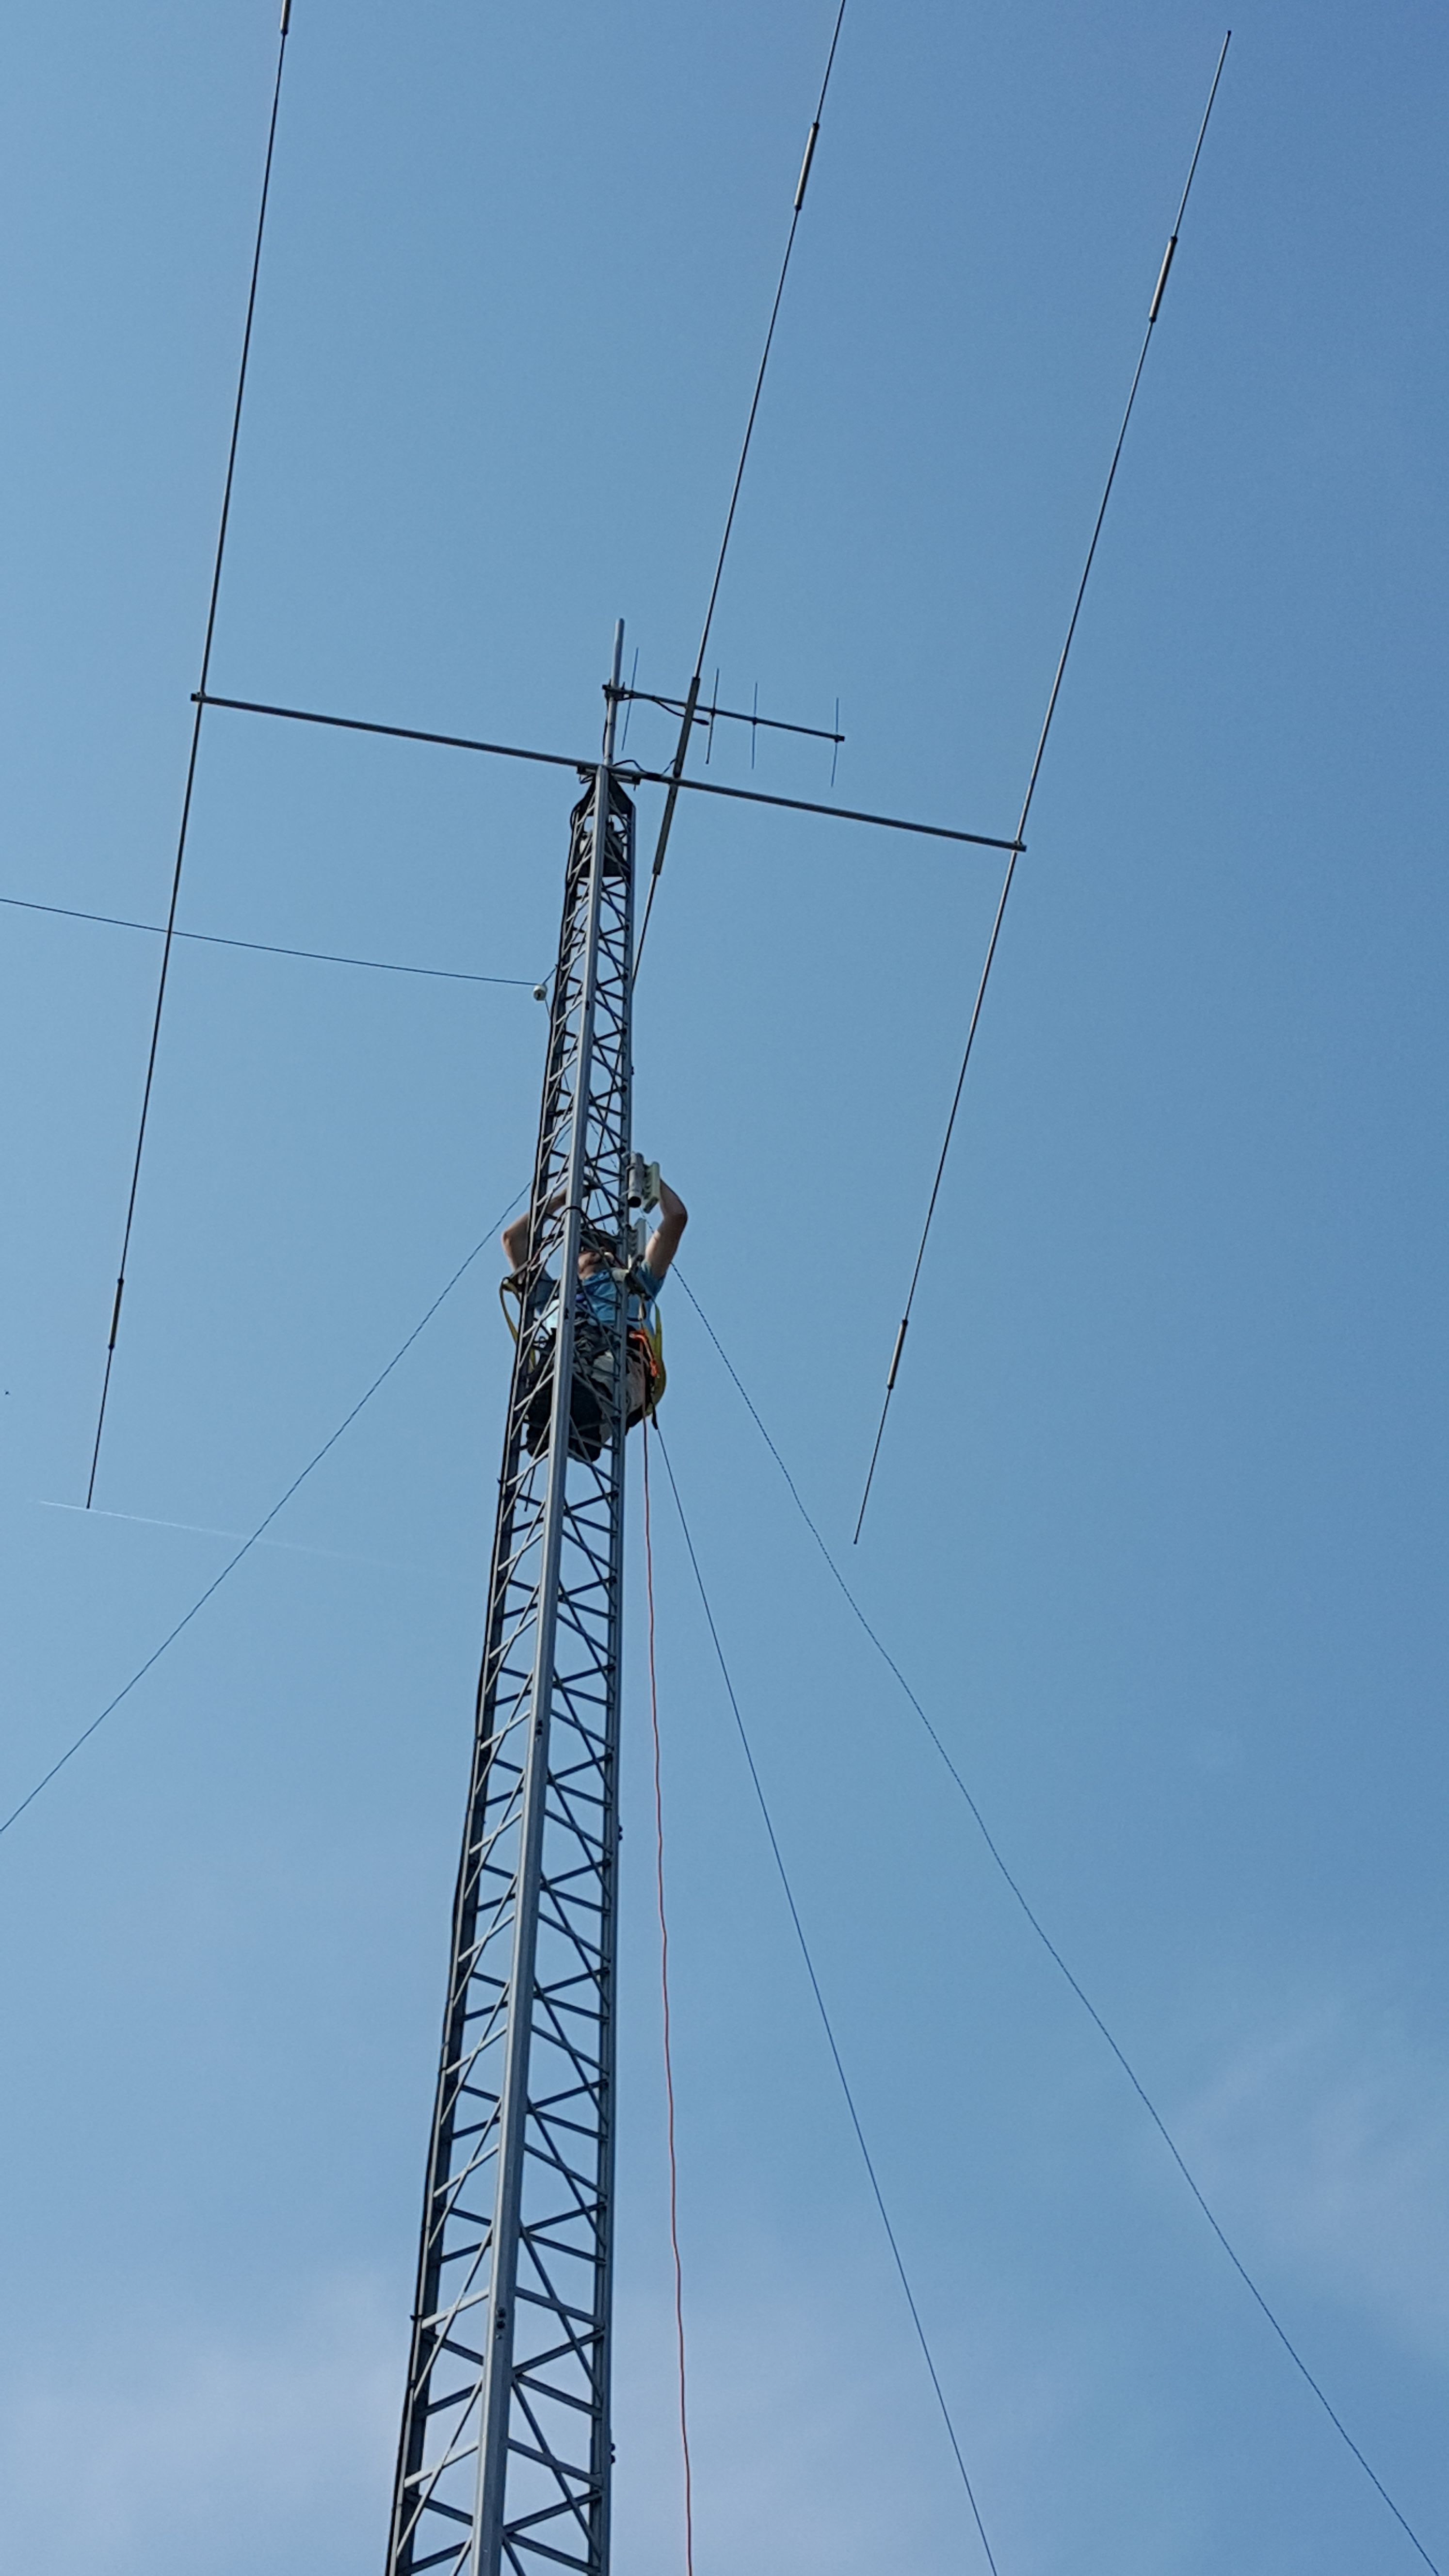 Colin scaling Walter's tower - replacing RF unit